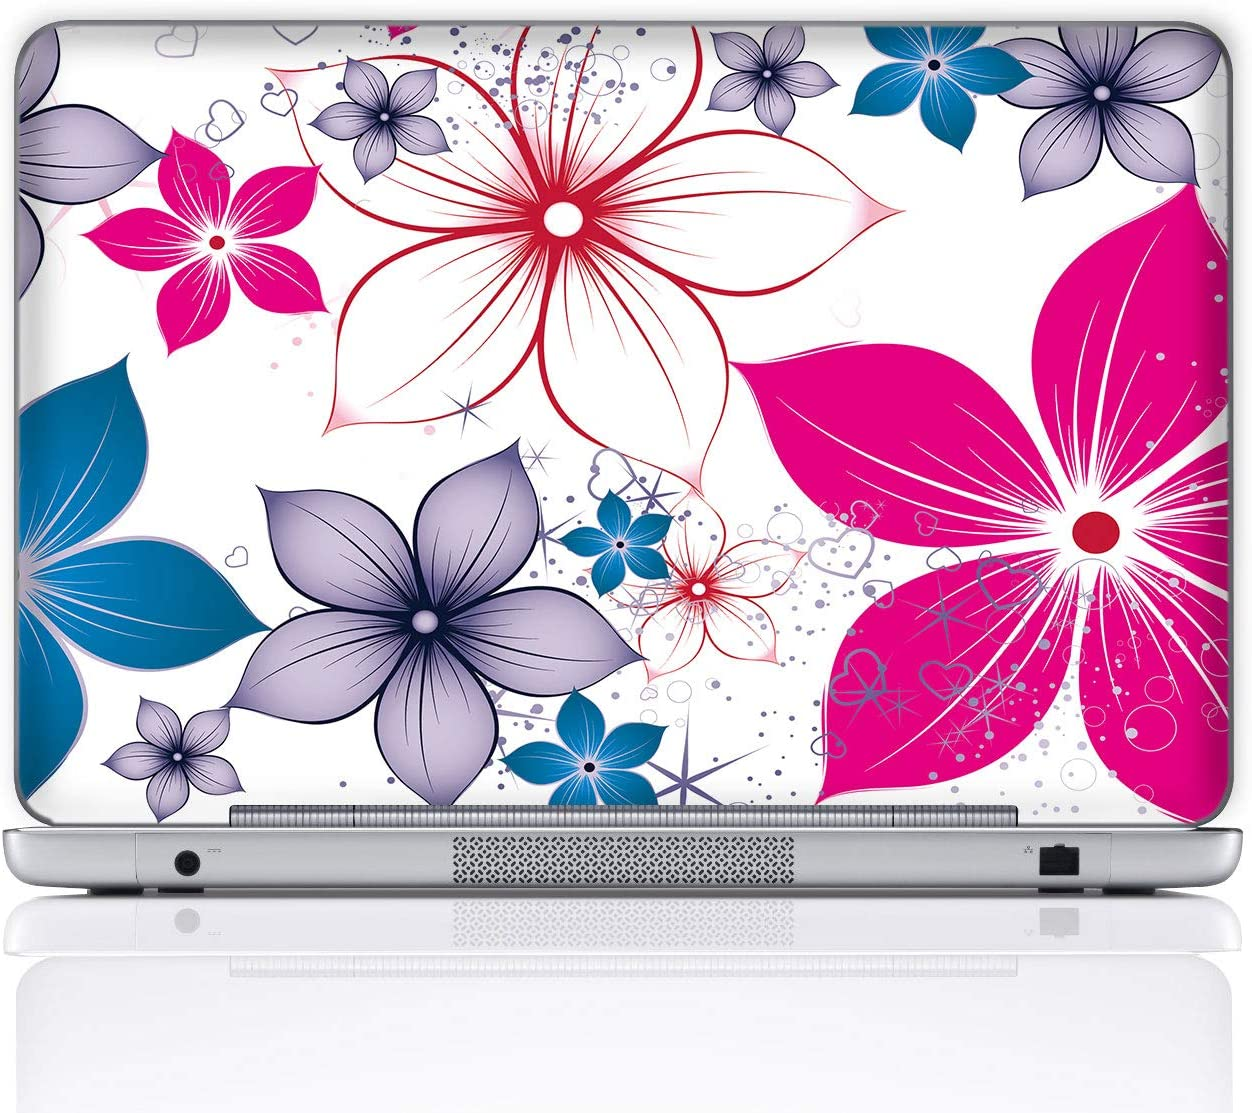 Meffort Inc 15 15.6 Inch Laptop Notebook Skin Sticker Cover Art Decal (Included 2 Wrist pad) - Colorful Flowers